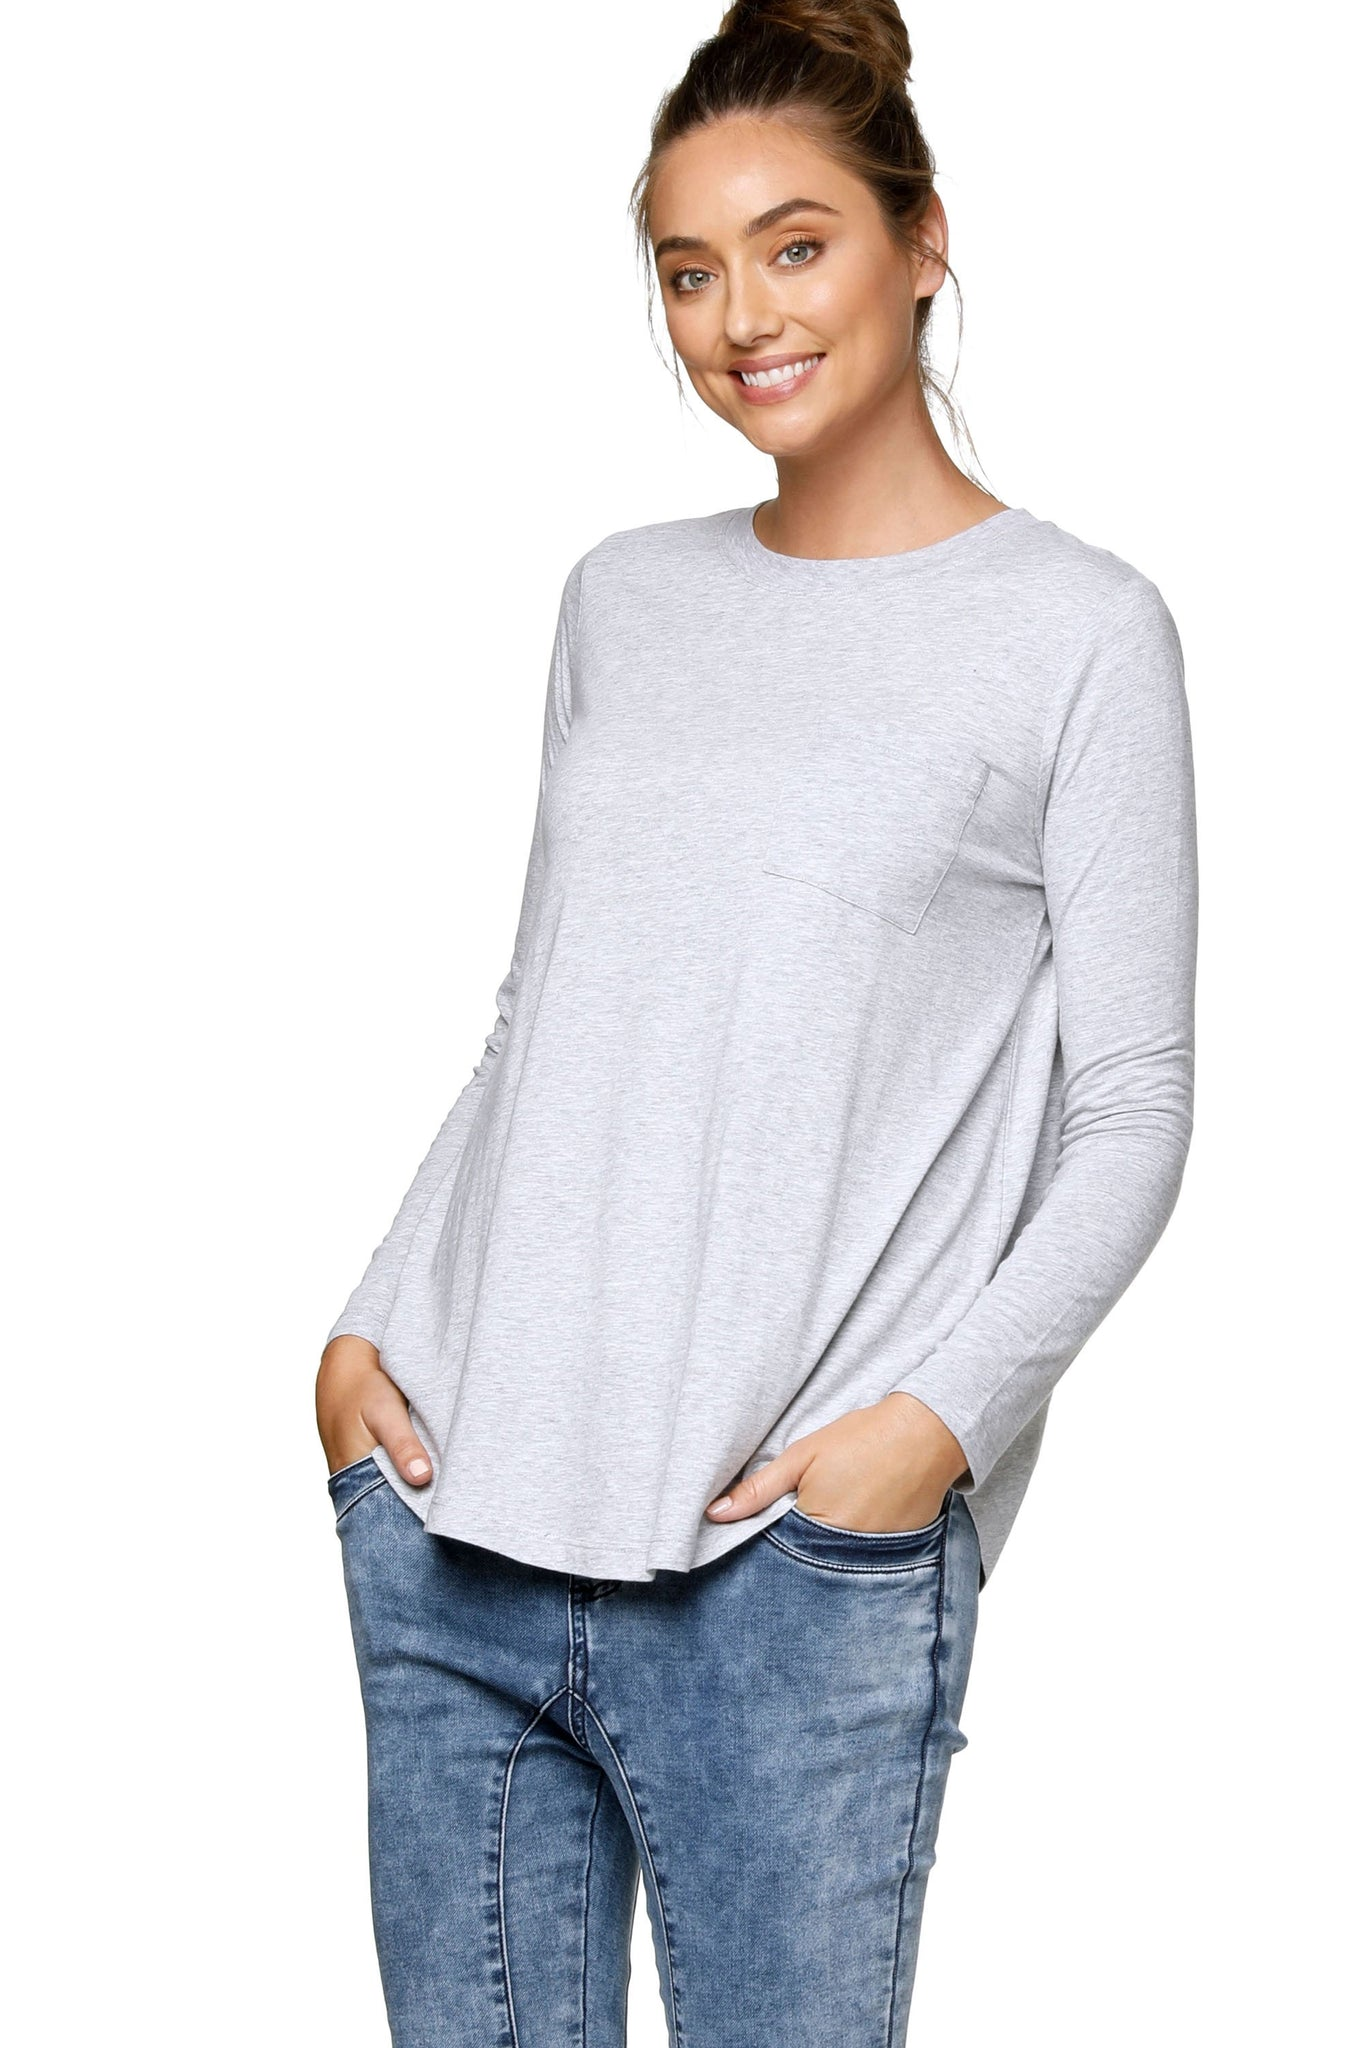 Maternity Long Sleeve Top - Grey Marle 8